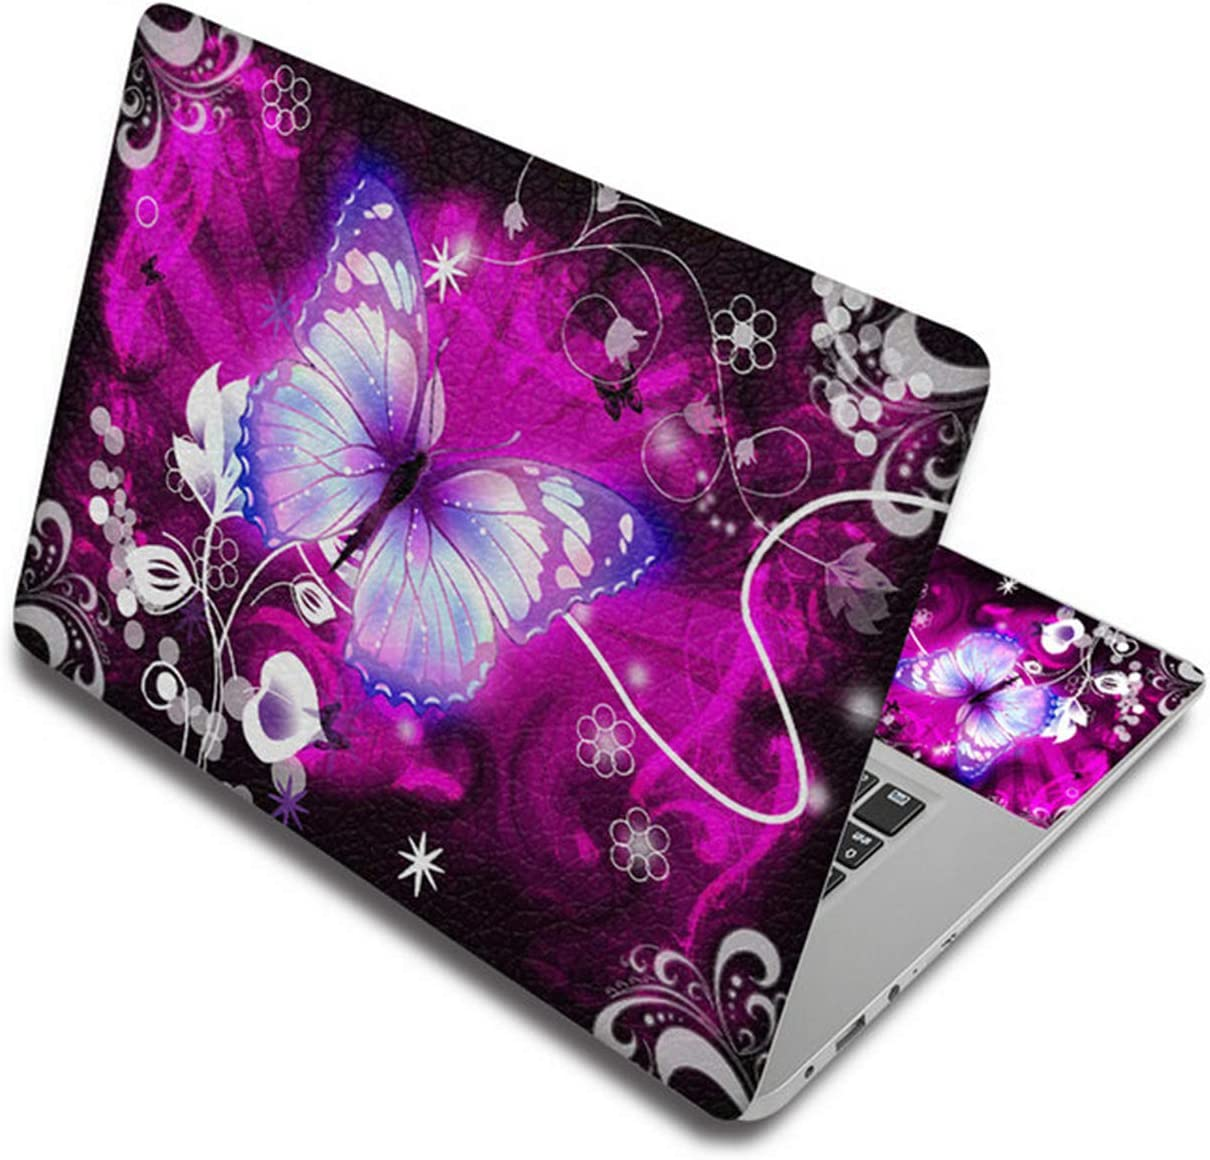 "Butterfly Vinyl Stickers Laptop Skin Decals 11.6"" 12"" 13.3"" 15"" 14"" 15.6"" 17"" Computer Sticker for Lenovo/hp/MacBook air/xiao mi-Laptop Skin 2-Custom Other Size"